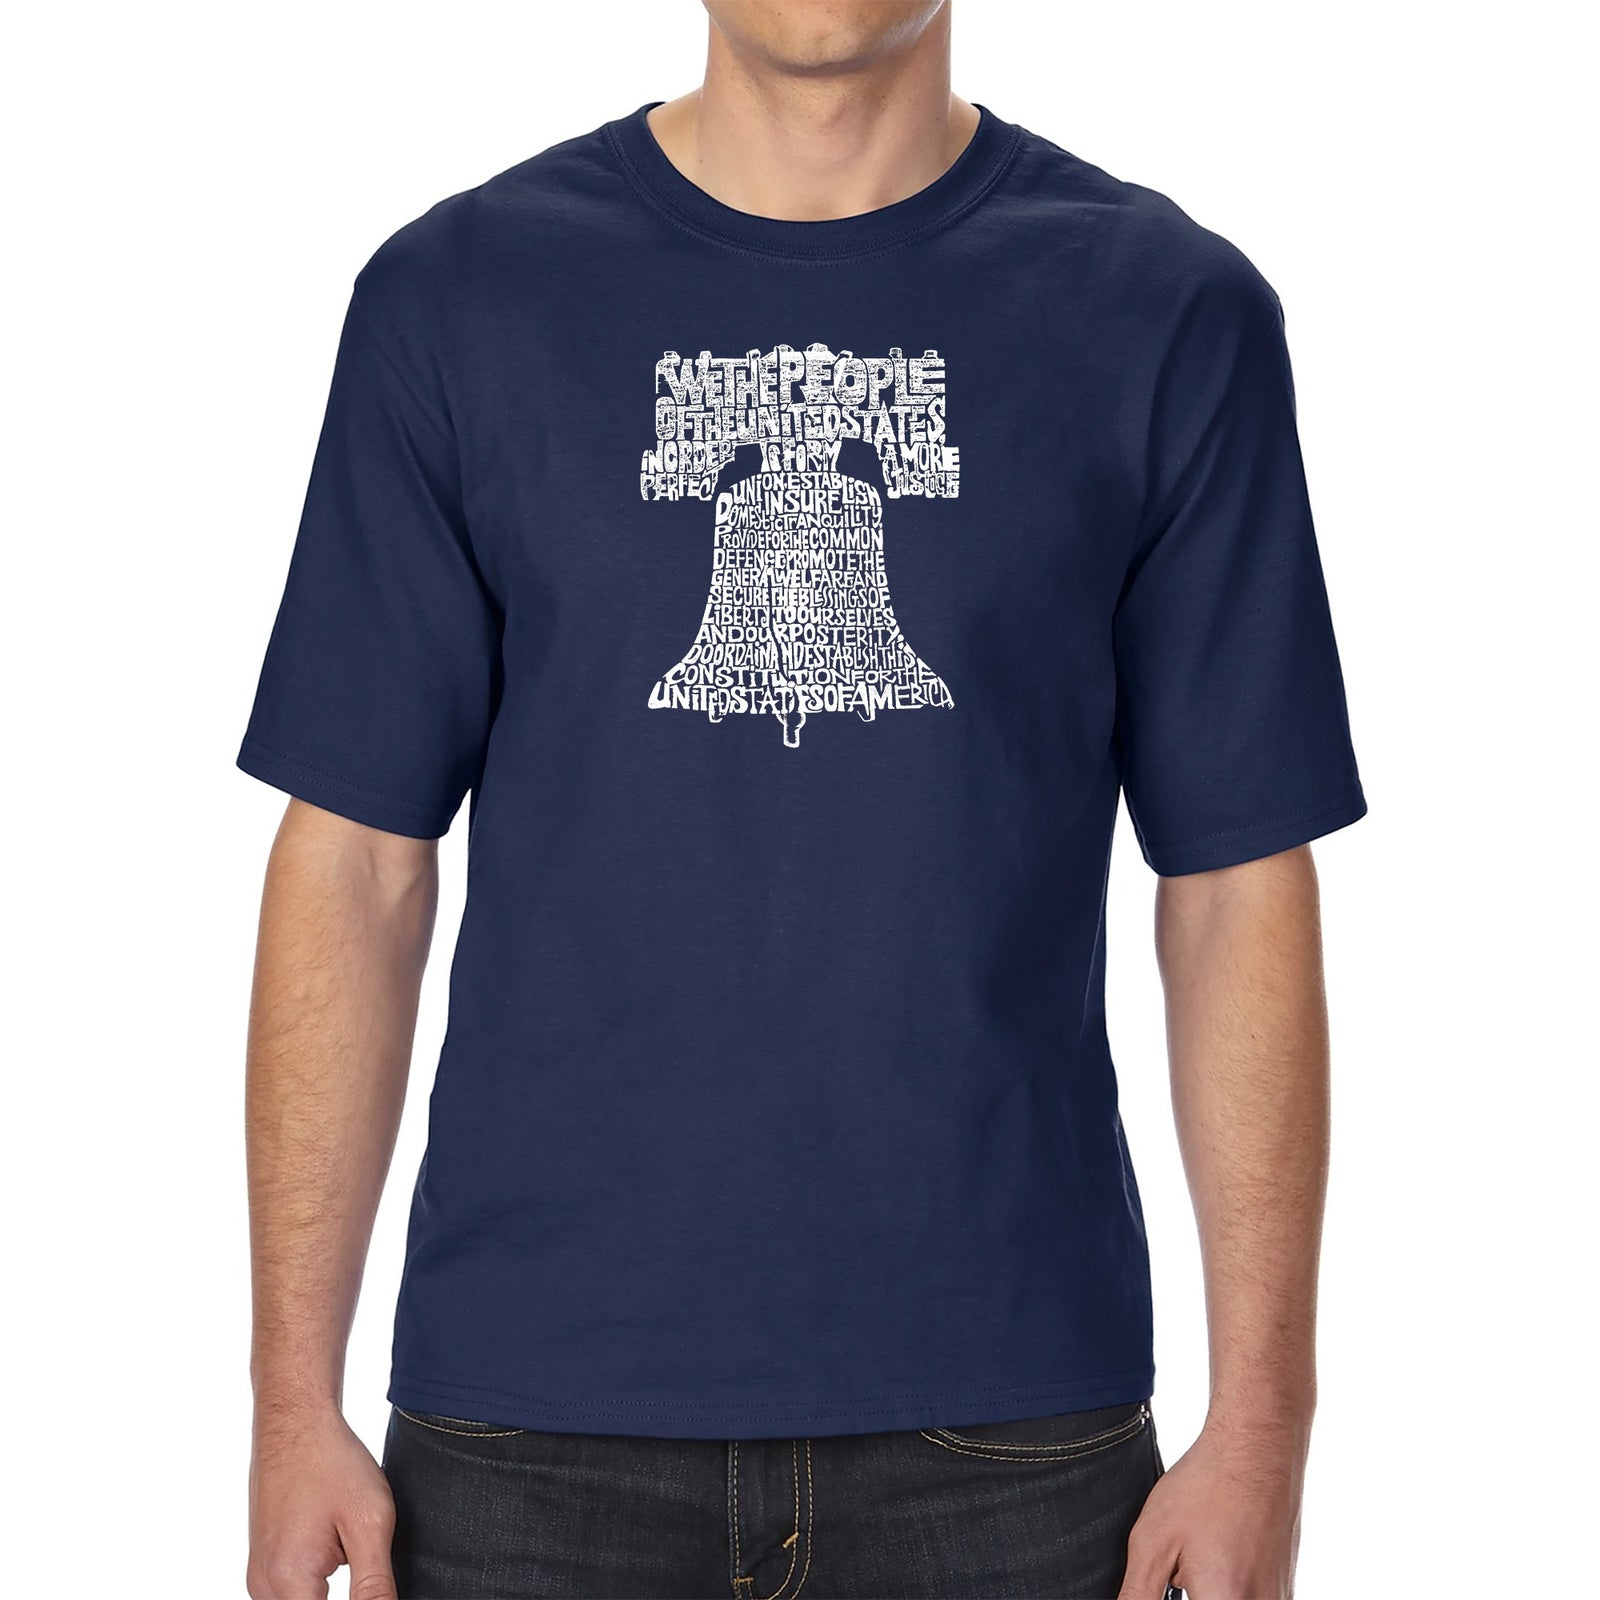 Men's Tall and Long Word Art T-shirt - Liberty Bell